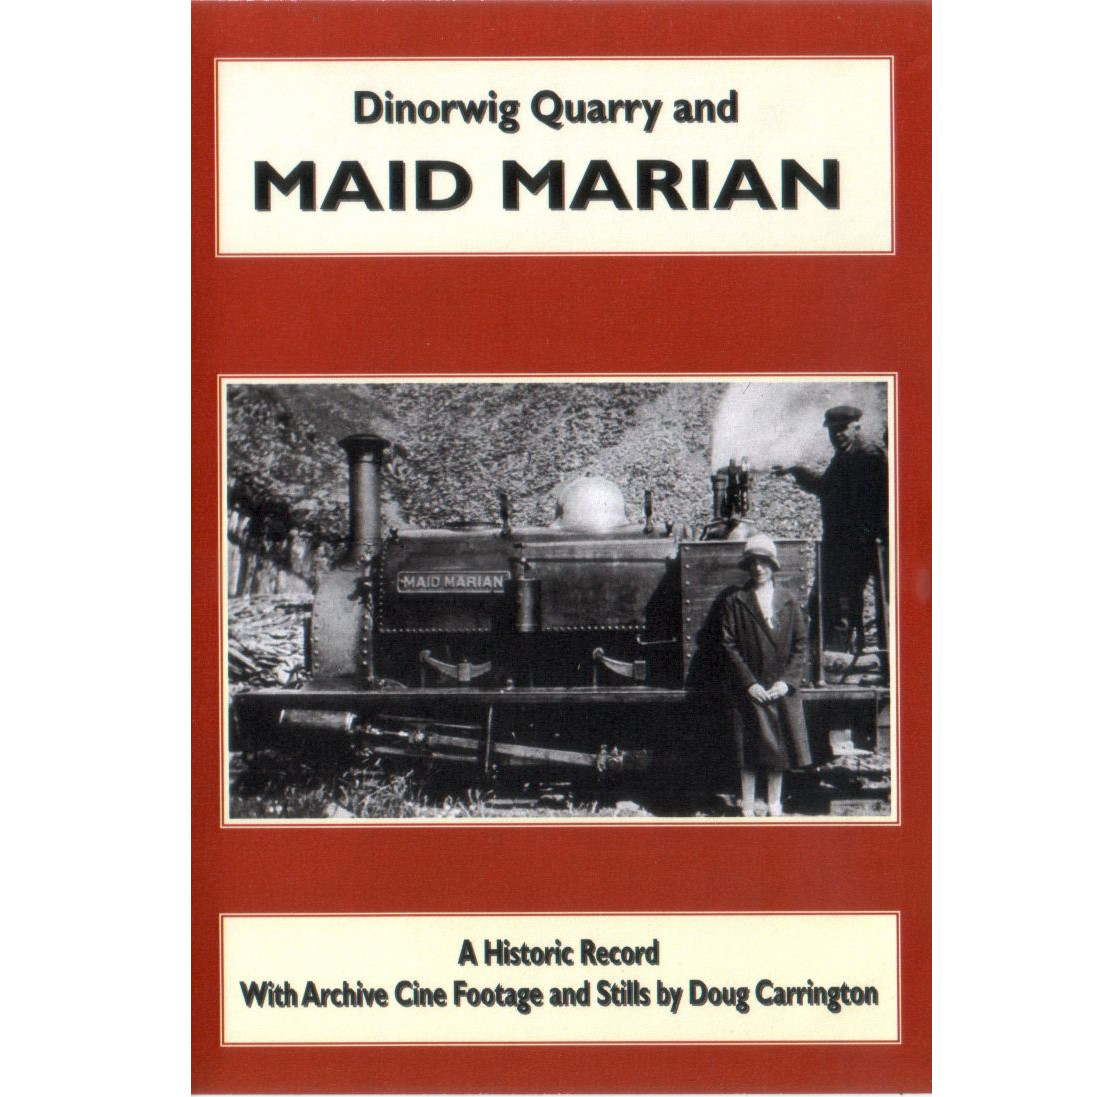 Dinorwig Quarry and Maid Marian – A Historic Record